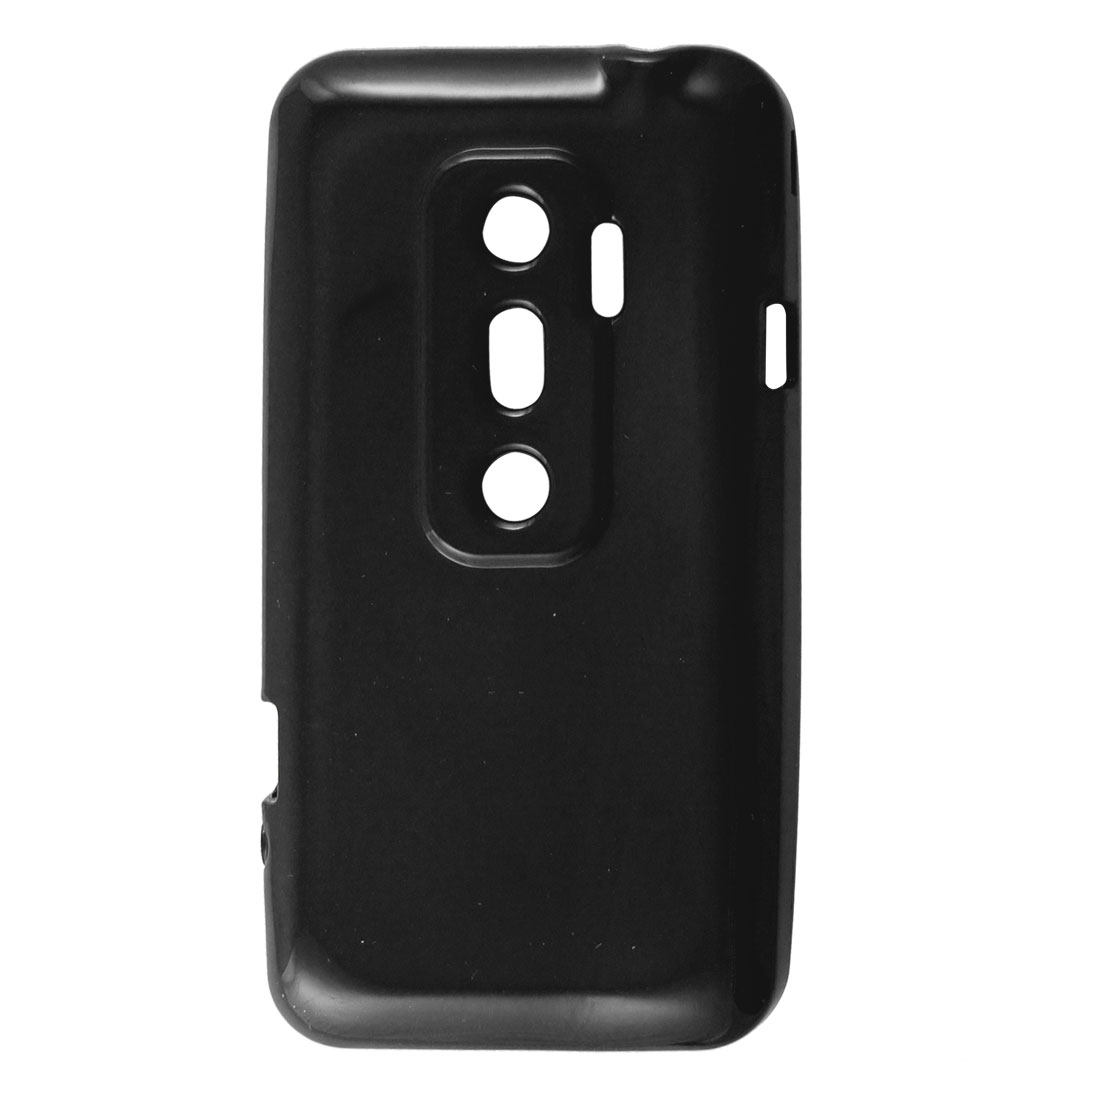 Protective Soft Plastic Black Cover Case Shell for HTC EVO 3D G17